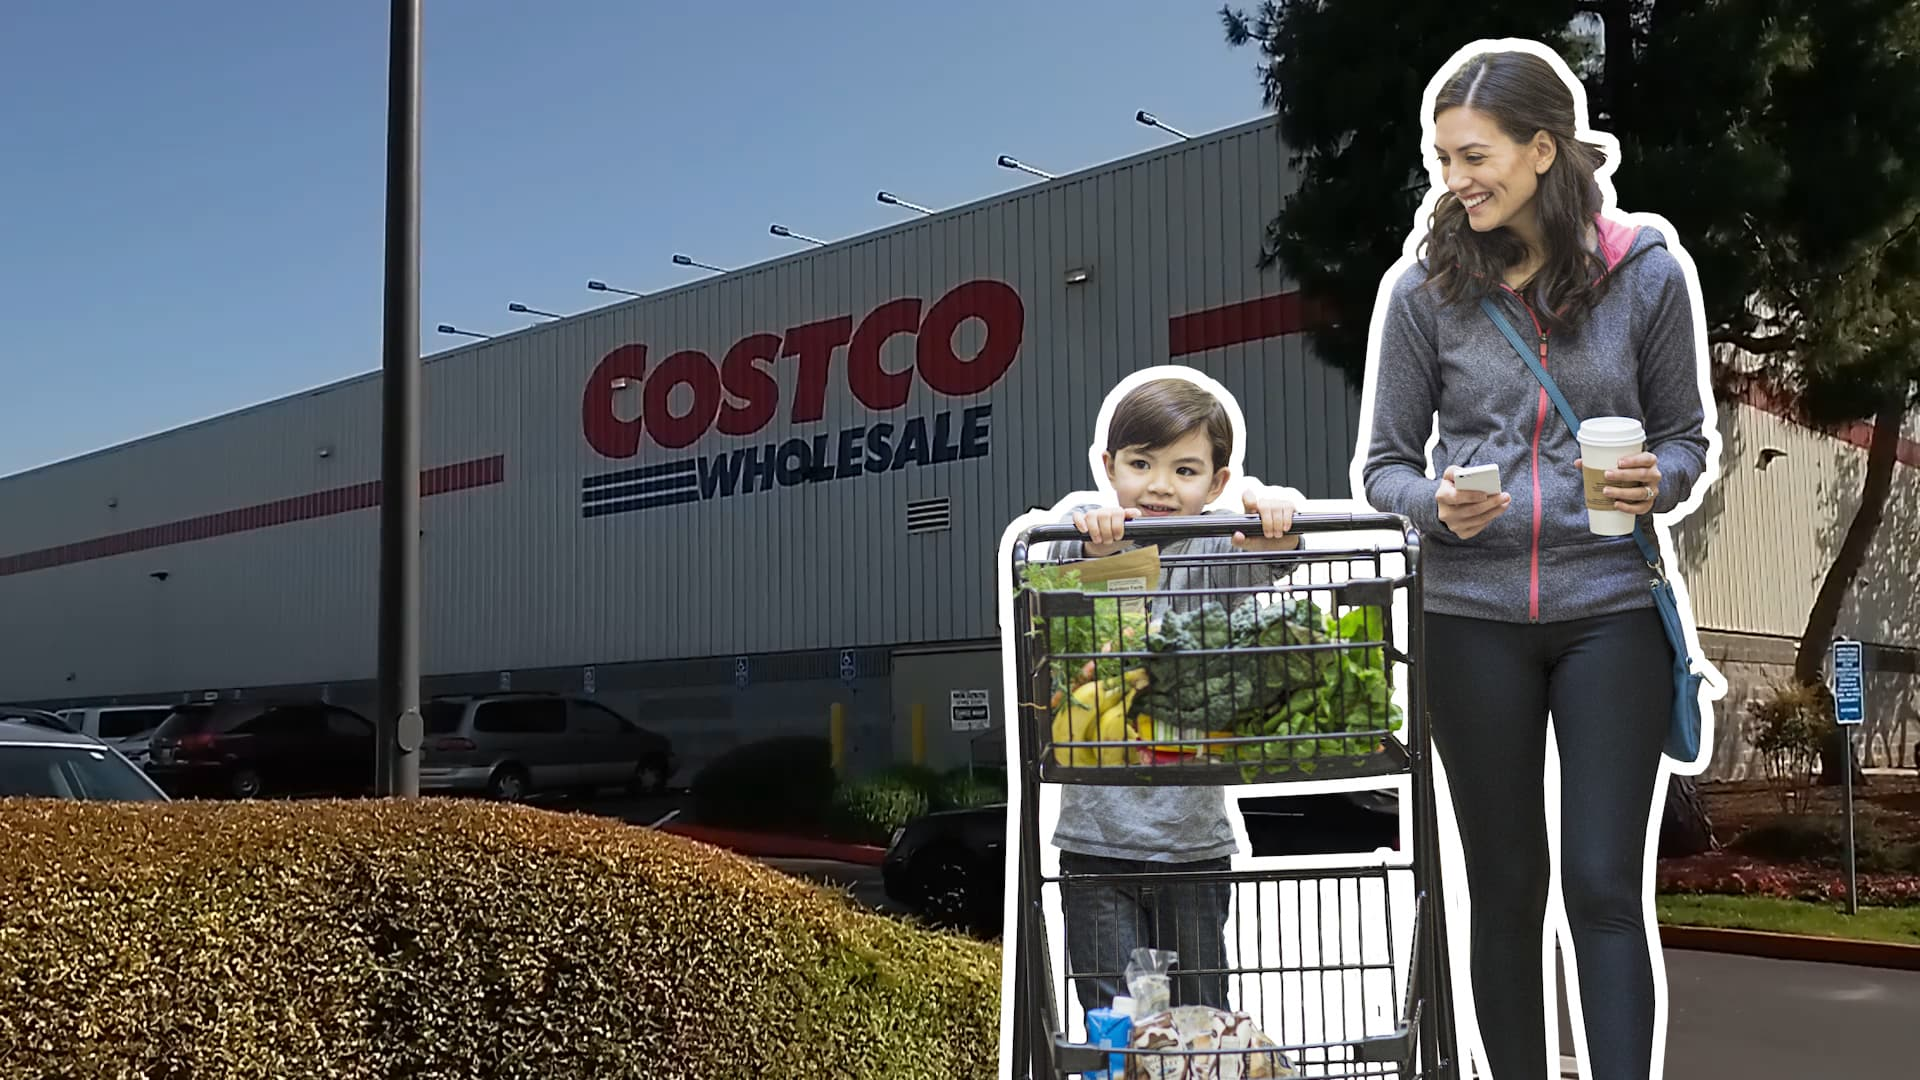 9 foods and grocery items you should always buy at Costco